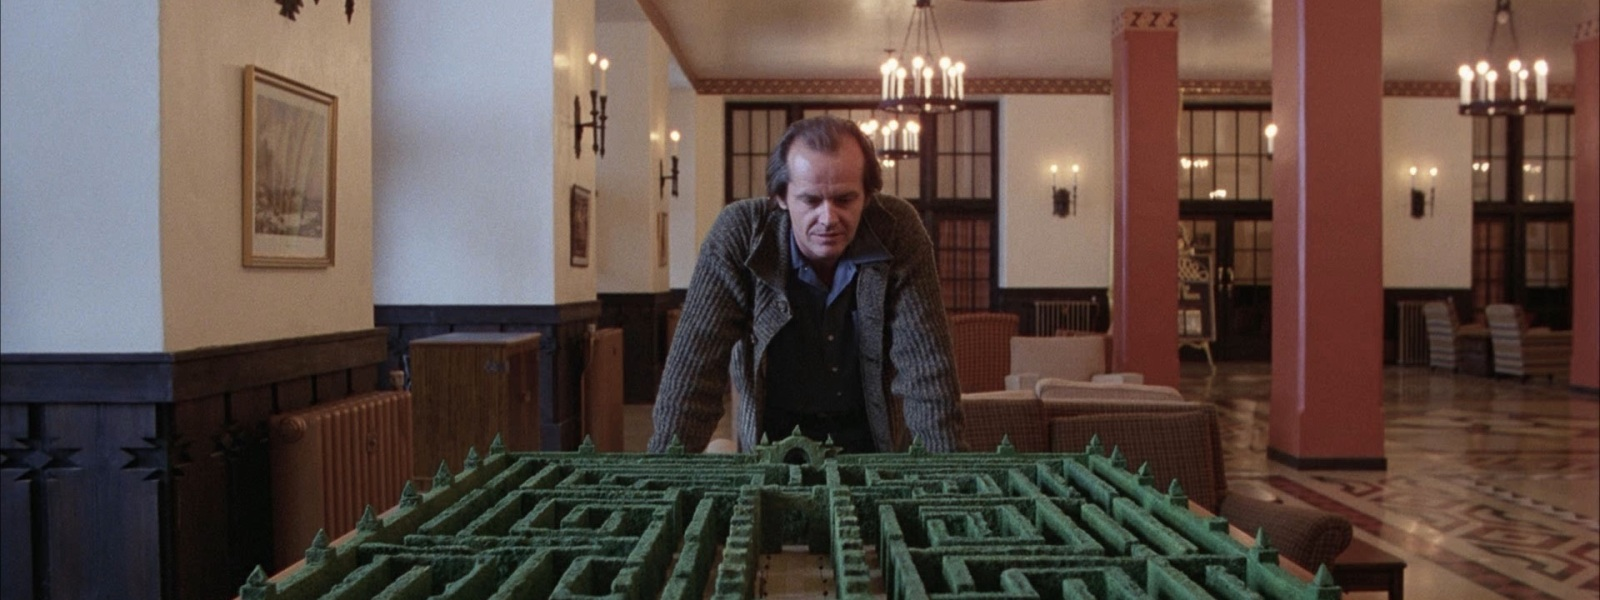 Jack Nicholson as Jack Torrance in The Shining (dir. Stanley Kubrick, 1980).